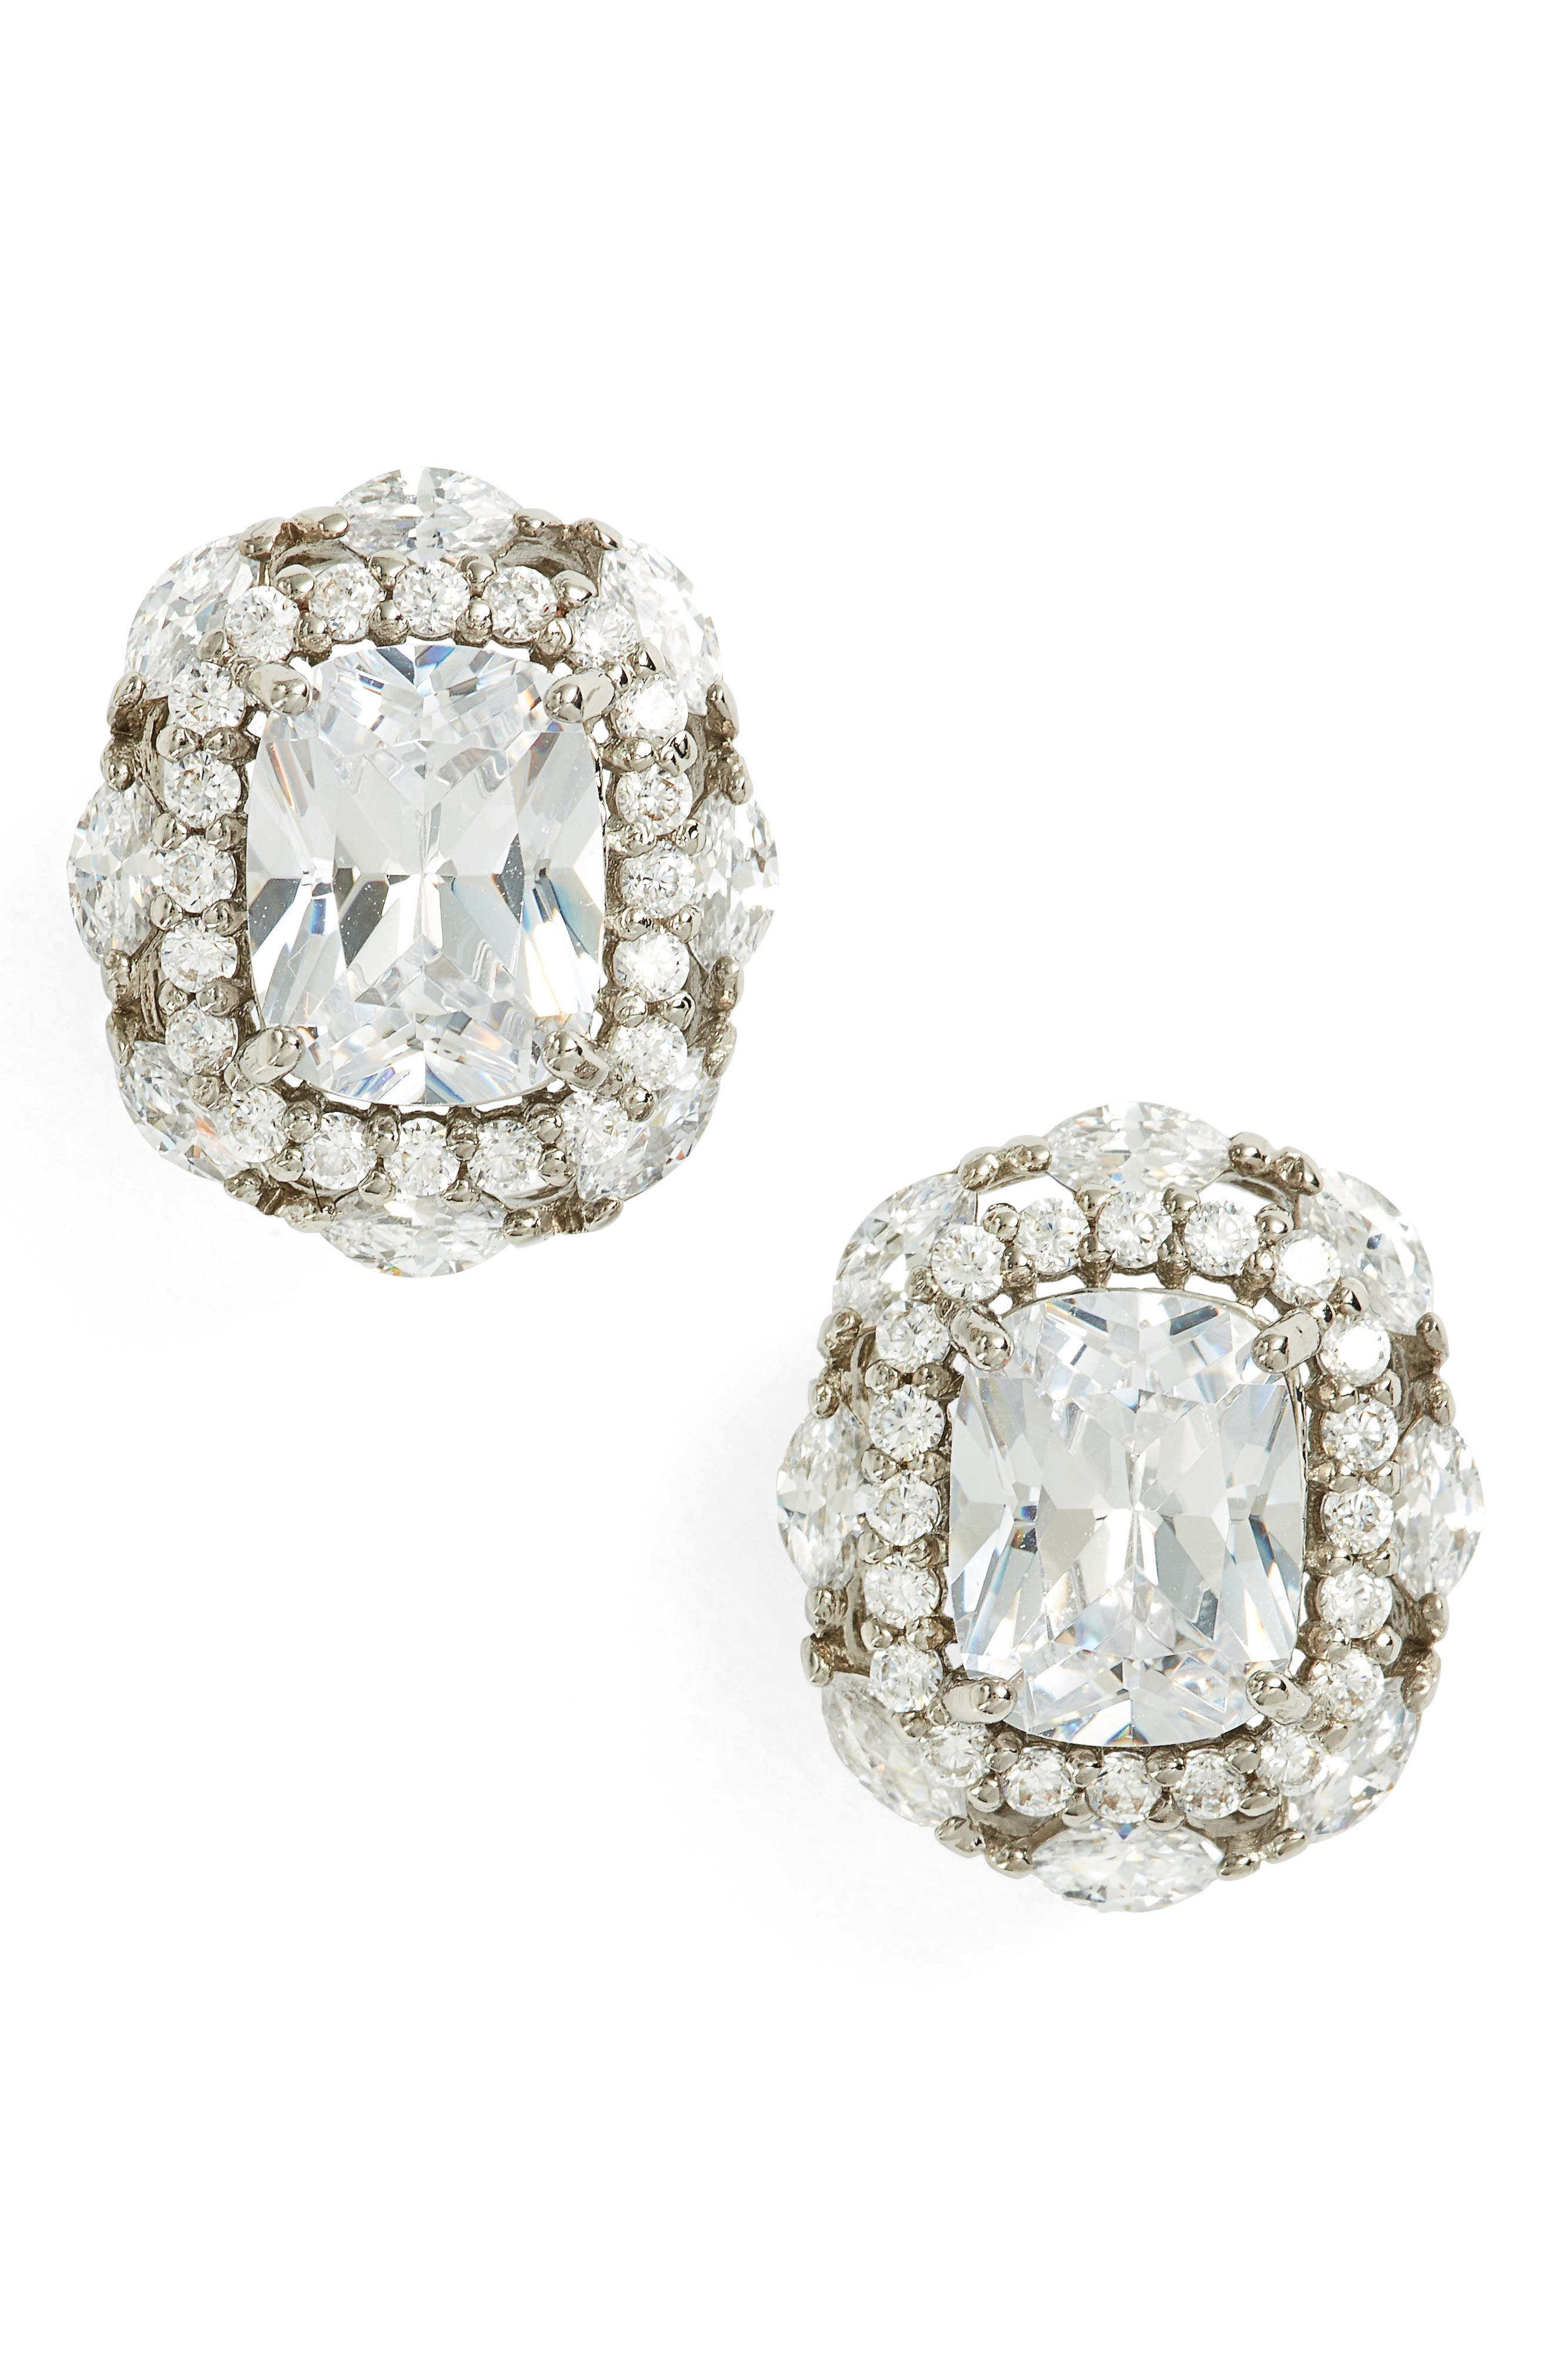 Estate Jewelry Cubic Zirconia Stud Earrings,                             Main thumbnail 1, color,                             Silver